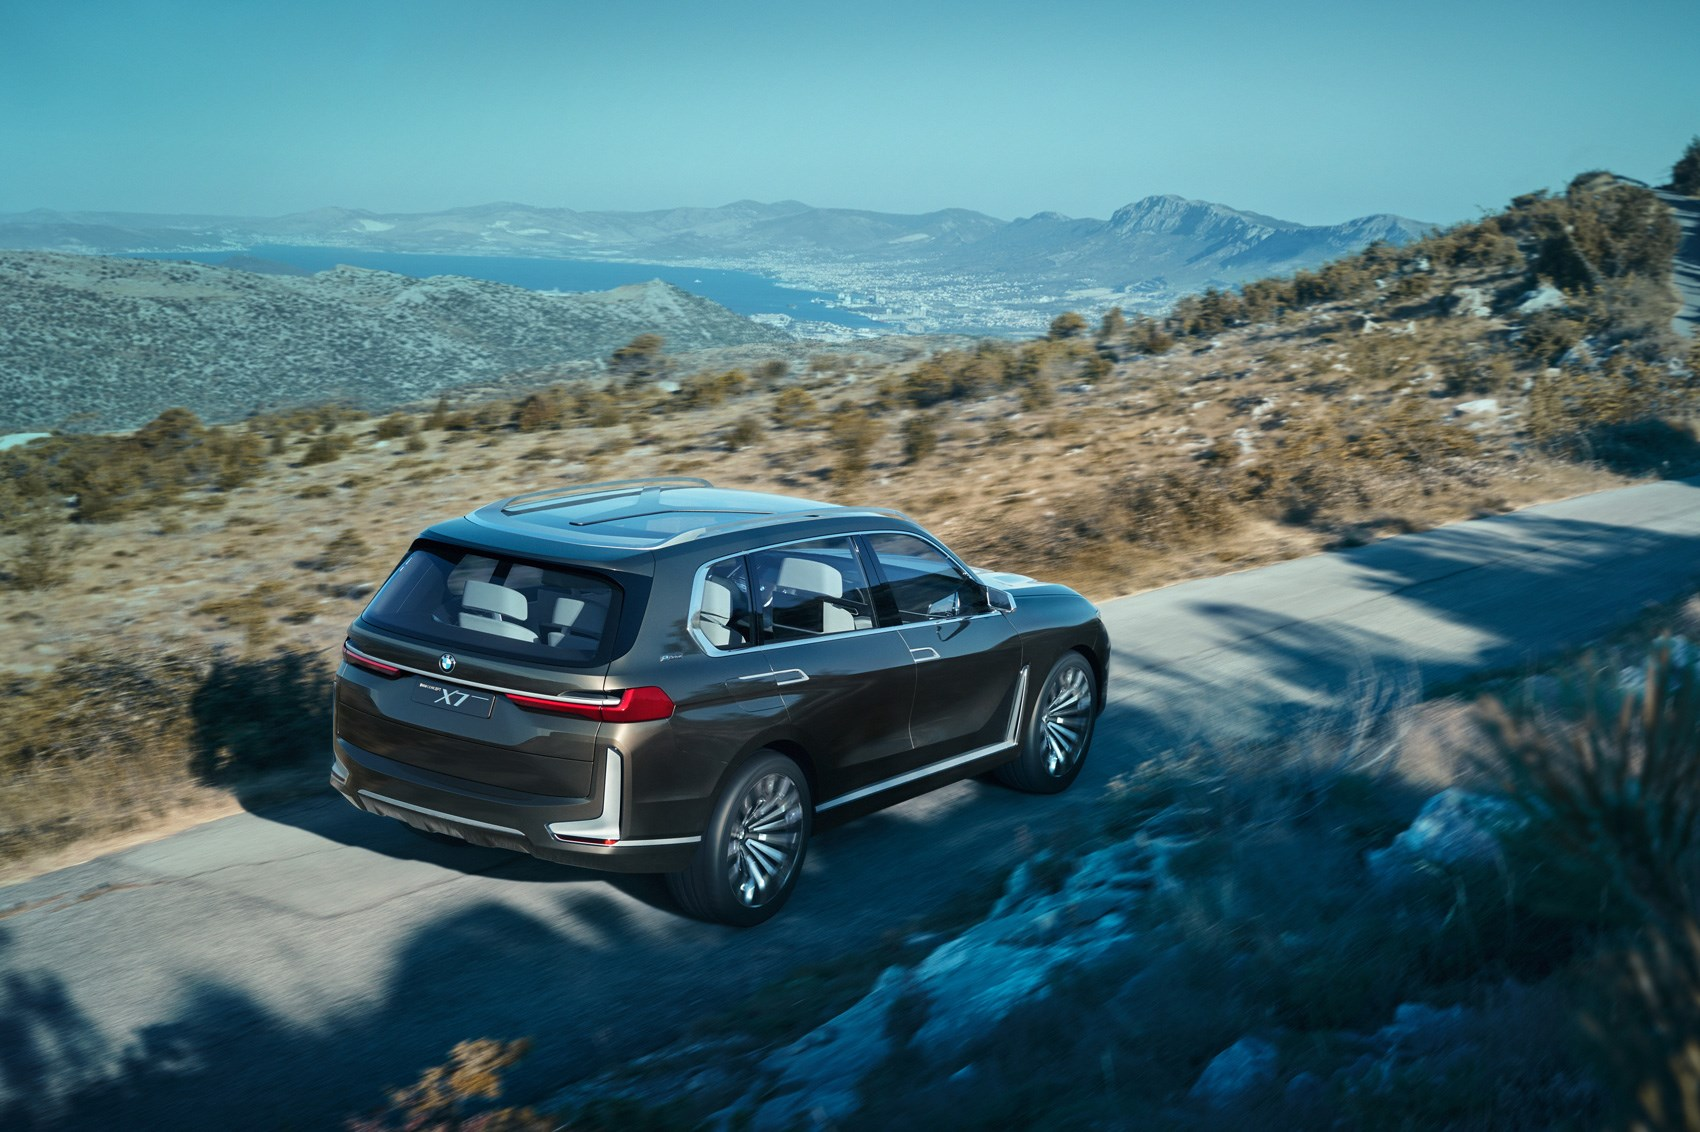 Coming to a posh school run near you new BMW X7 concept is here